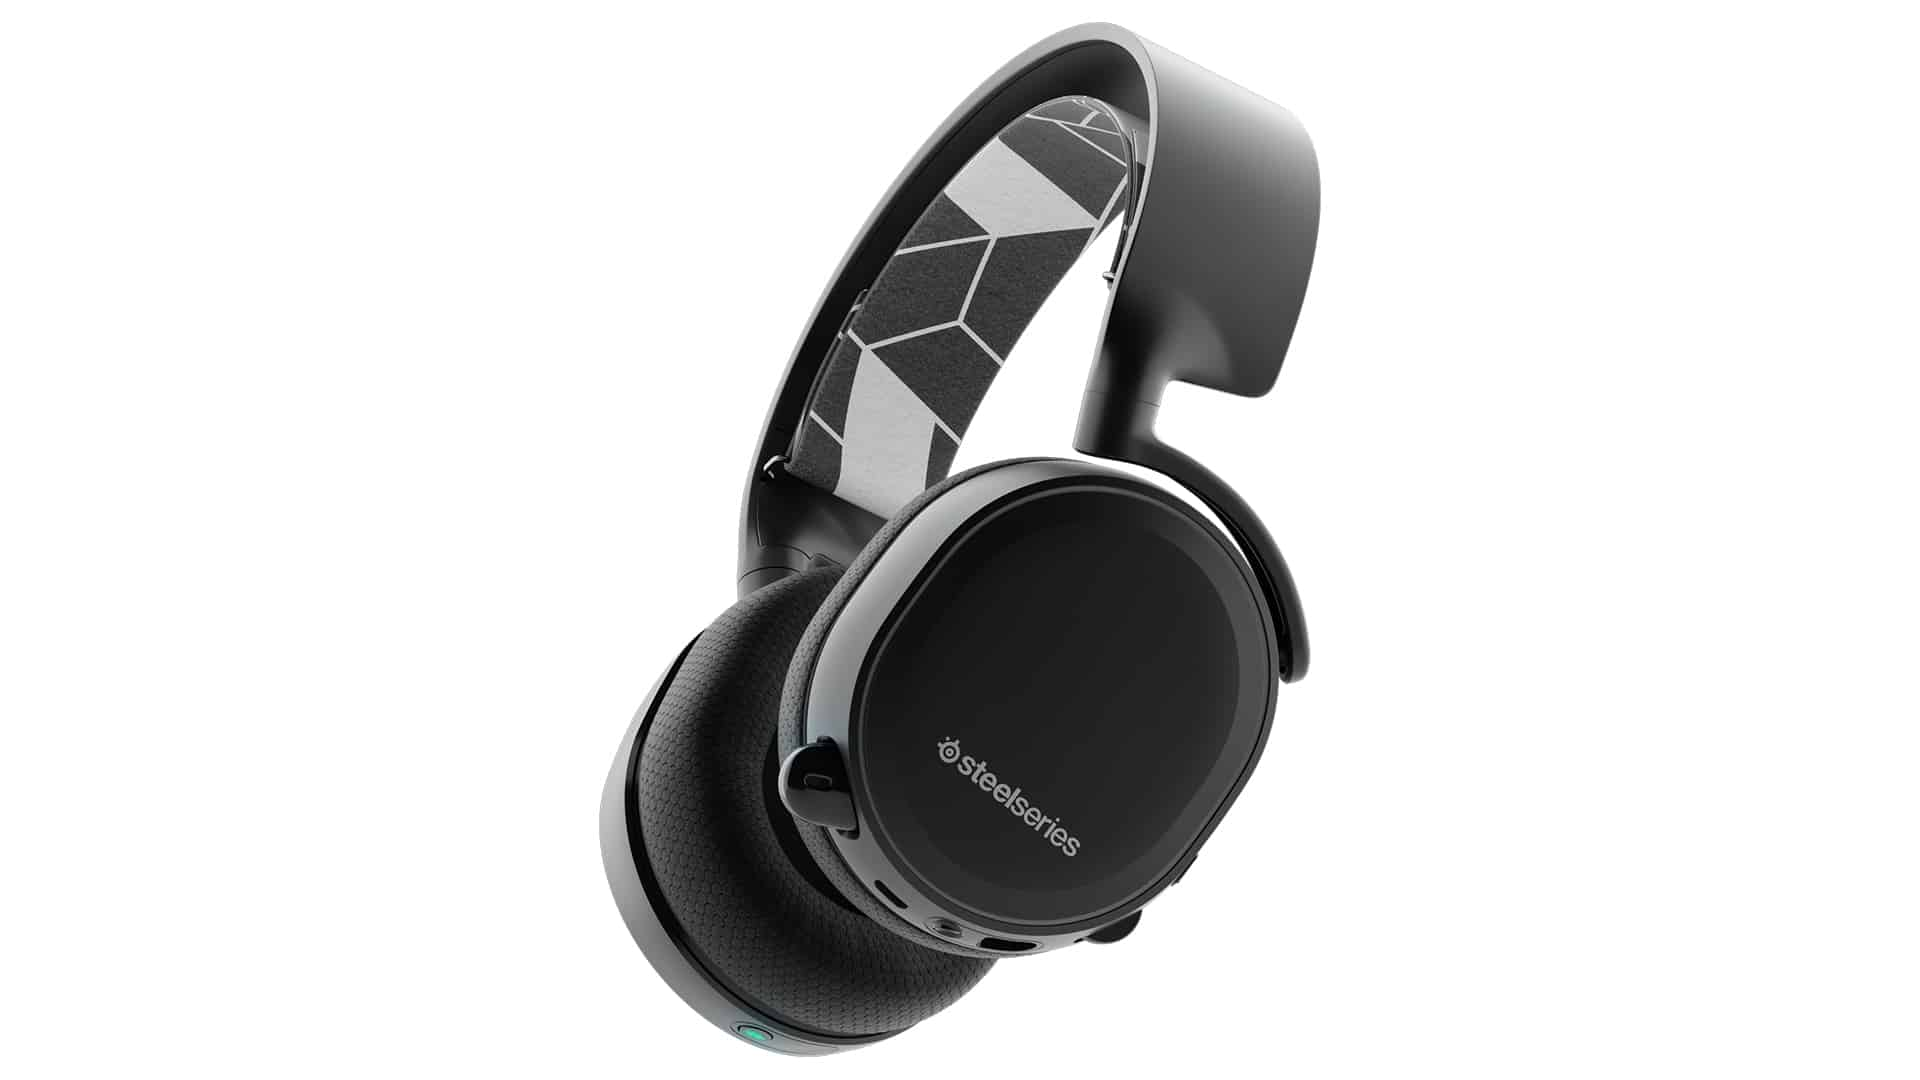 steelseries_arctis3_bluetooth_headset_gadgetsngaming